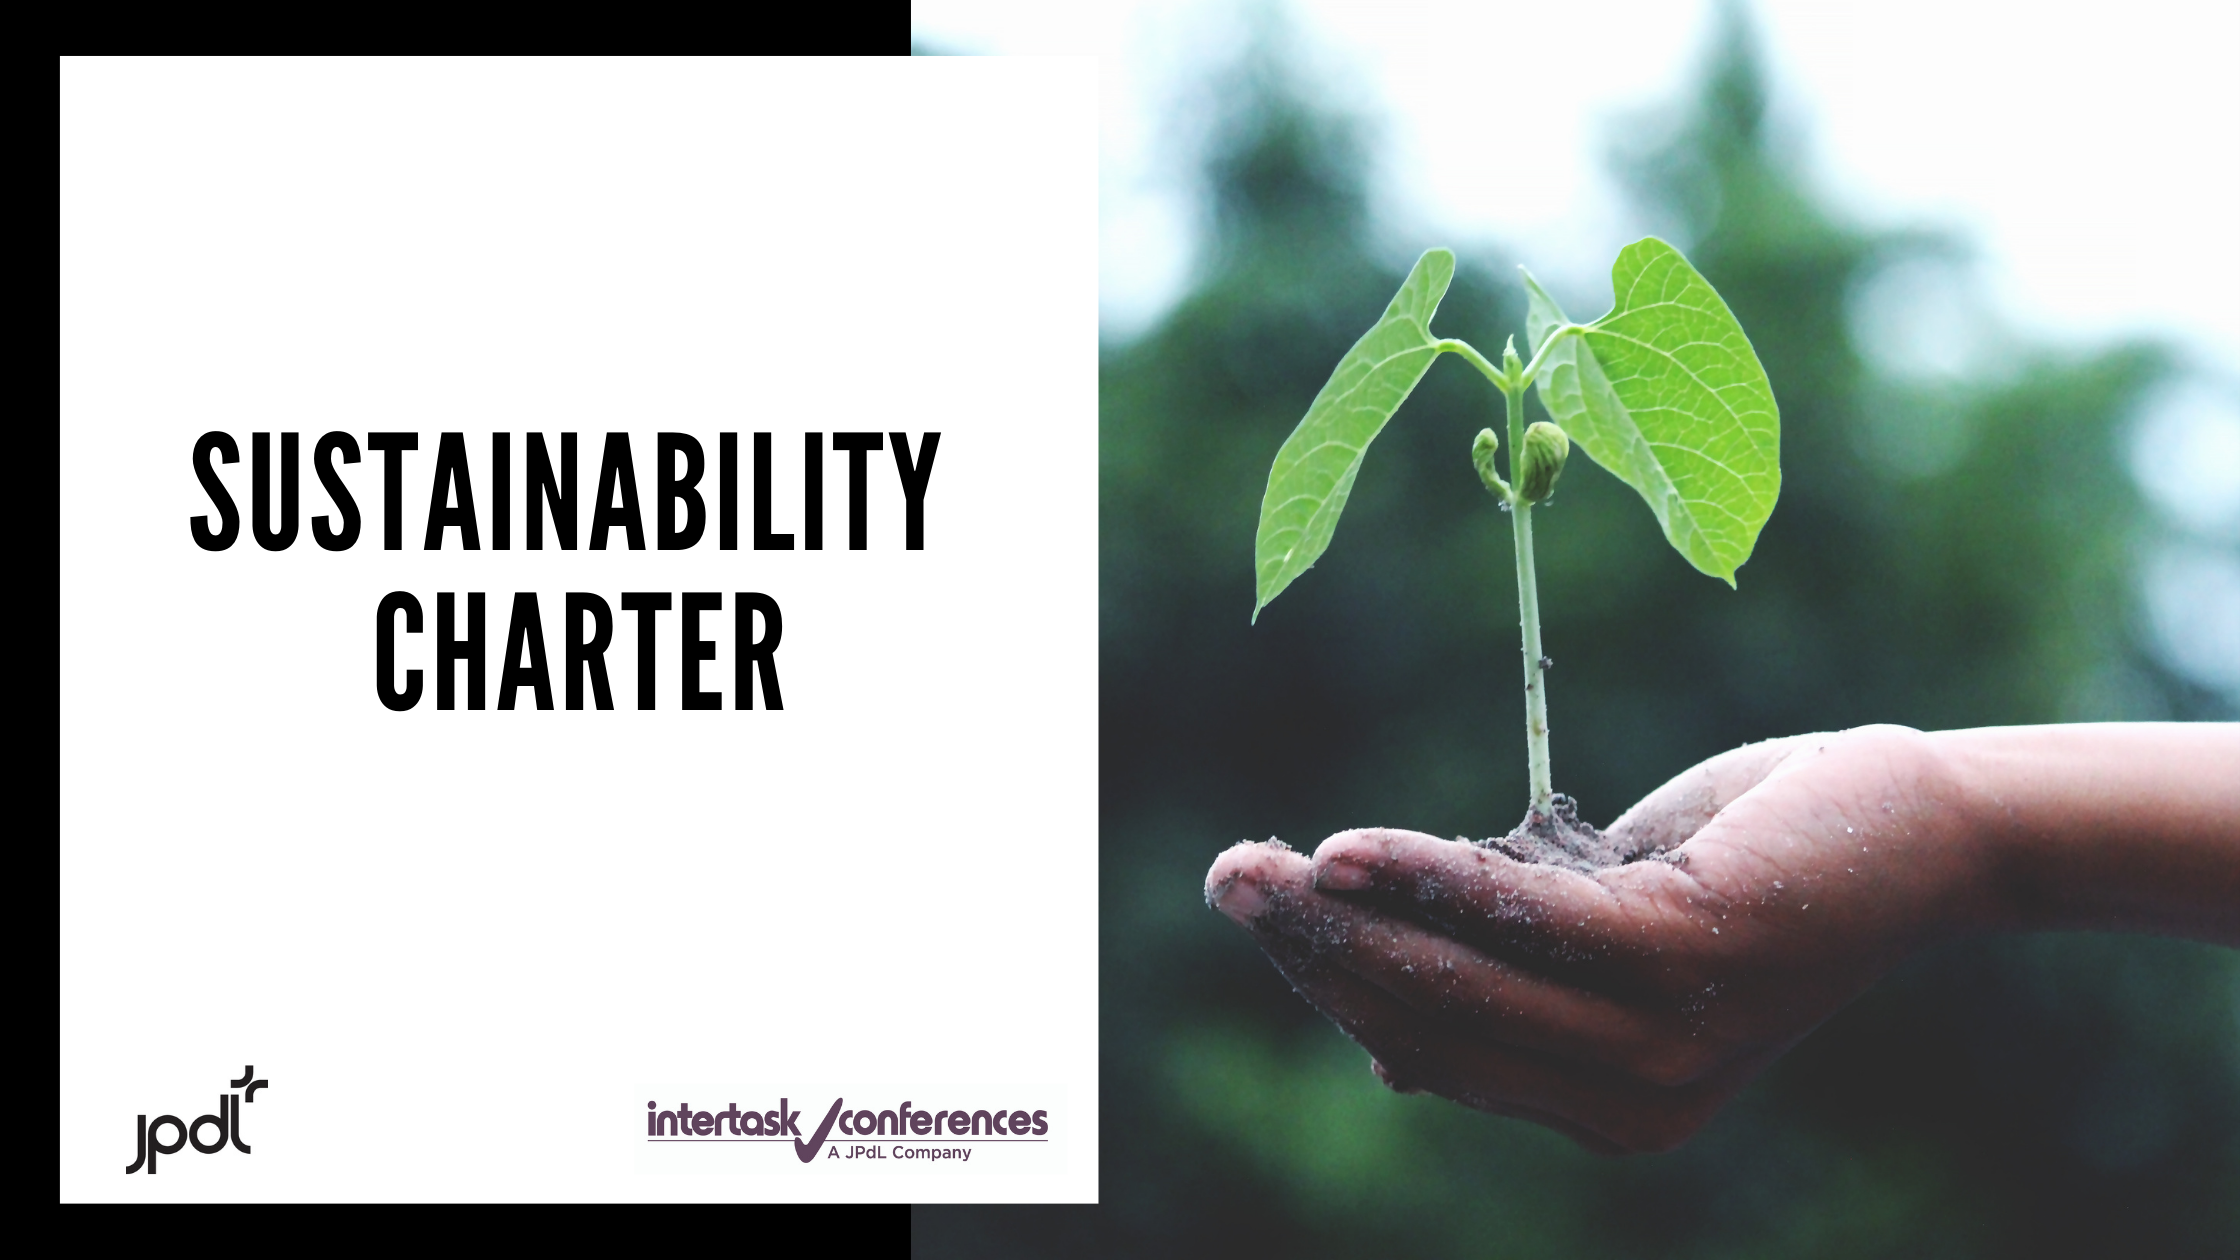 Sustainability Charter: A New Step for JPdL